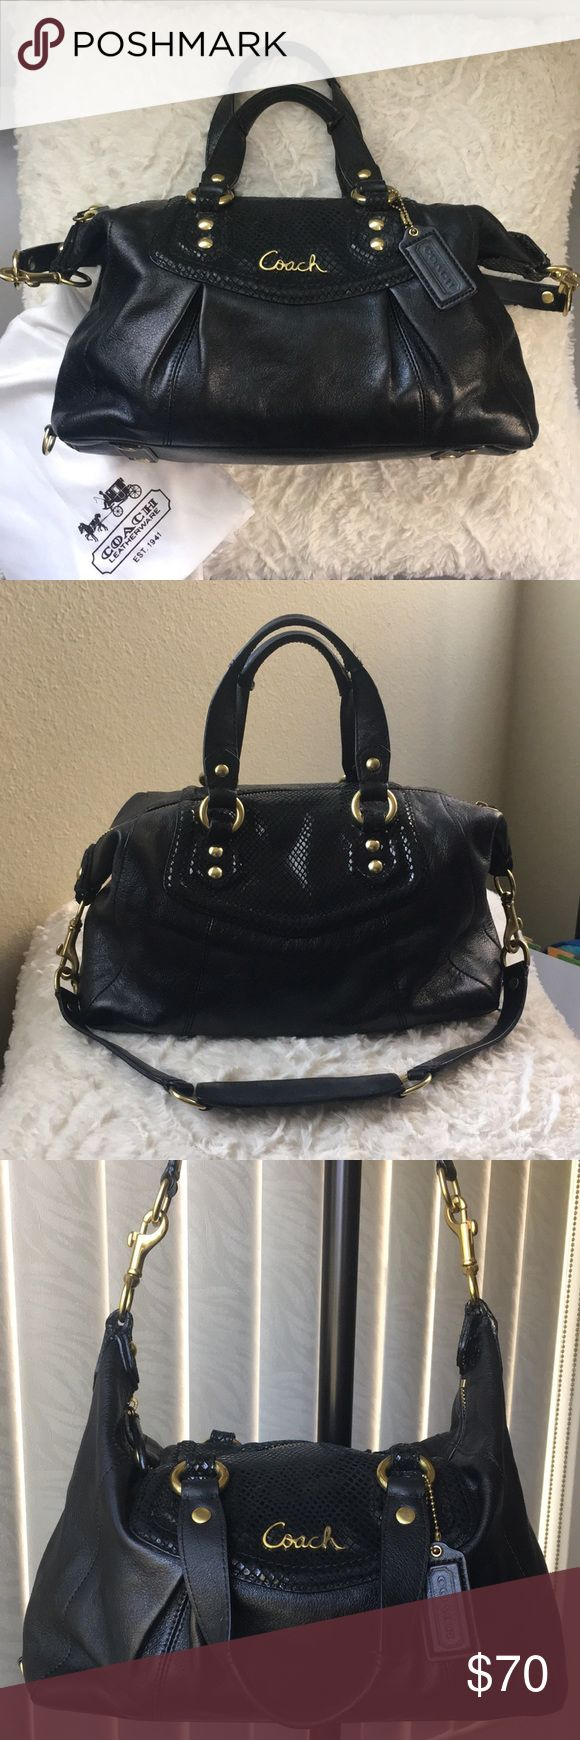 Black Coach Purse✨ Black authentic Coach purse with gold hardware. Also comes with a shoulder strap. The inside has one zipper pocket & two small pockets. All flaws are shown in ^pictures, overall it's a very cute purse & in good condition. Coach Bags Shoulder Bags